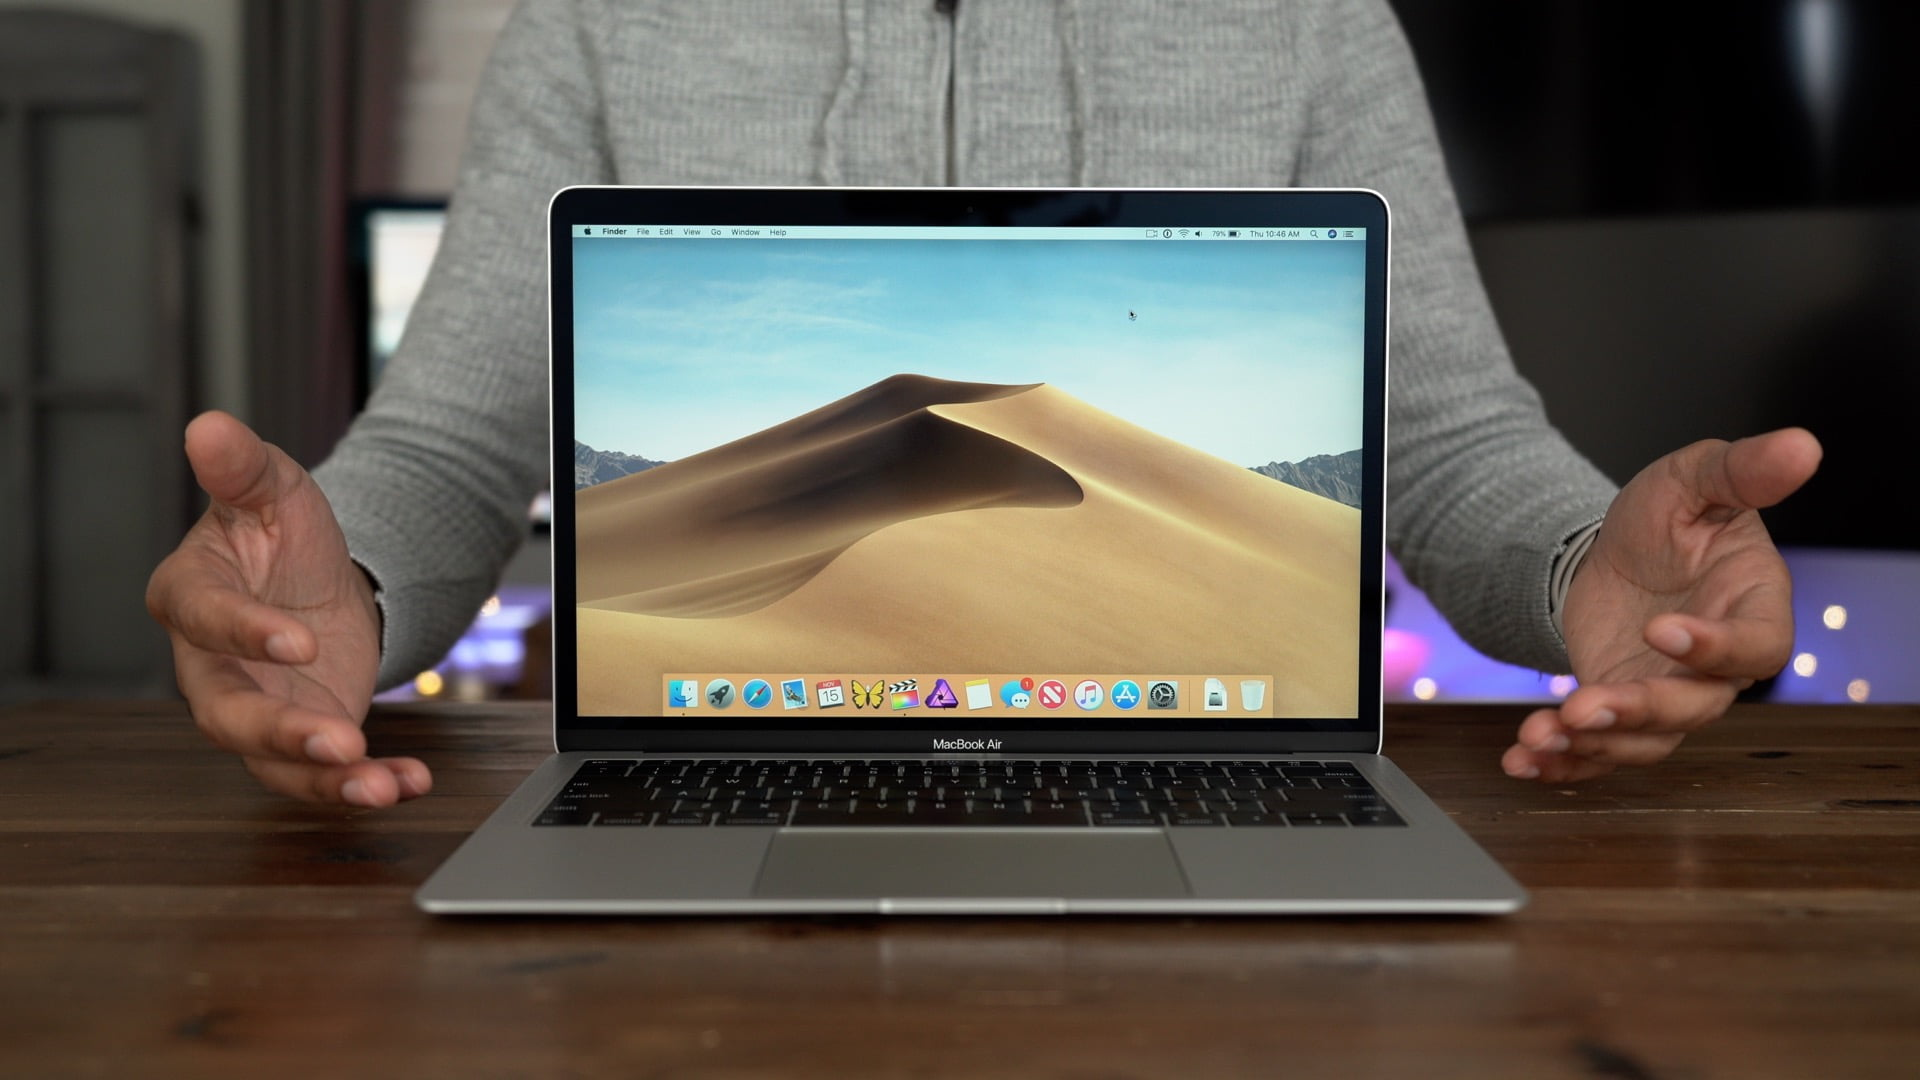 What would the rest of the Retina Display Macs look like?